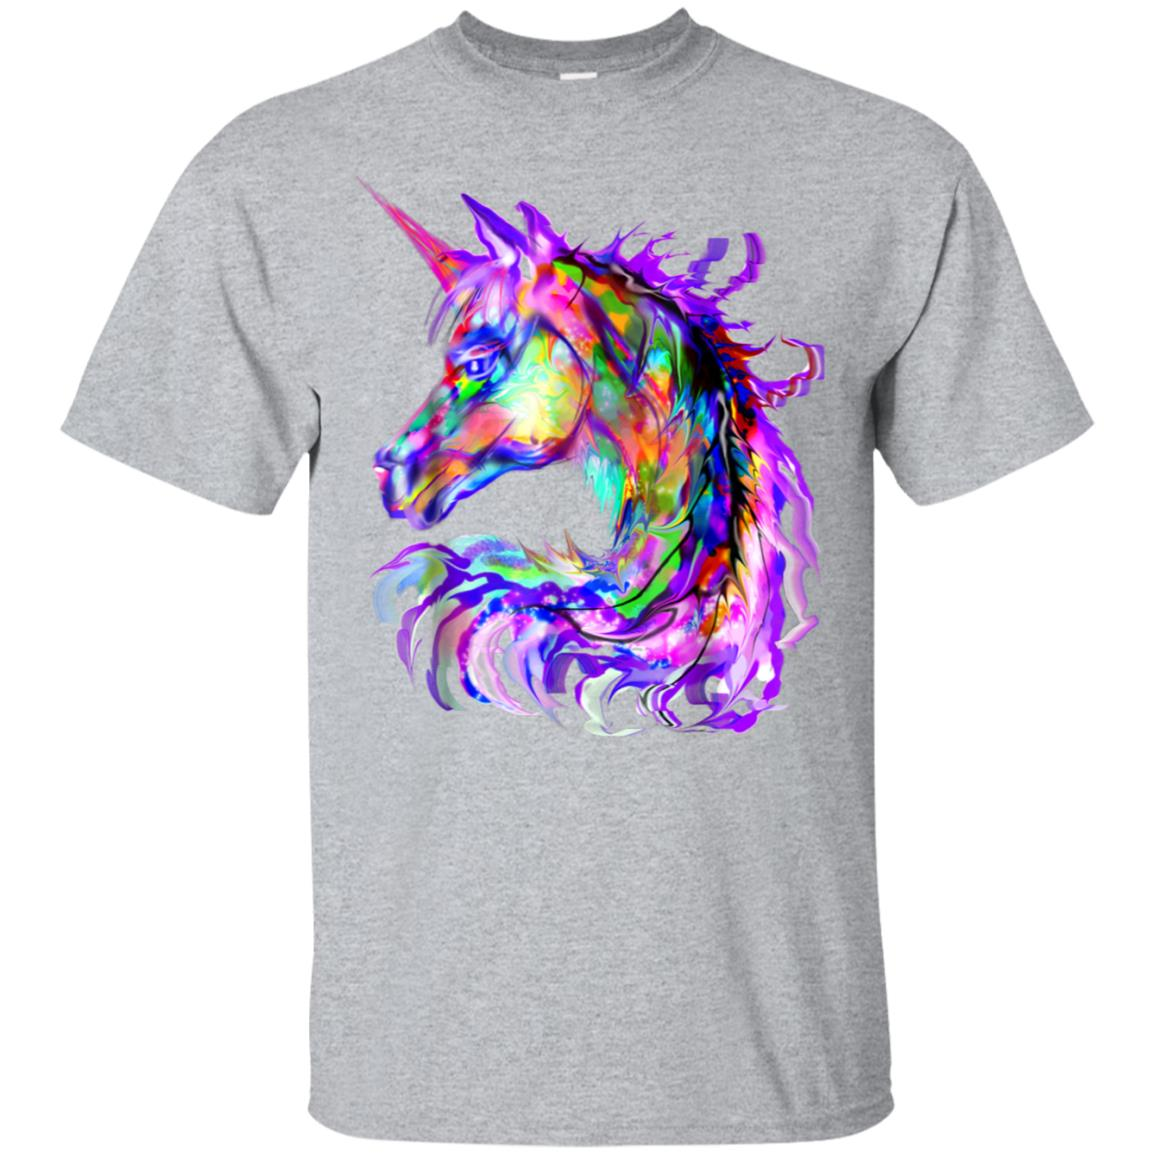 Colorful Rainbow Cute Unicorn Festival Rave Shirt 99promocode